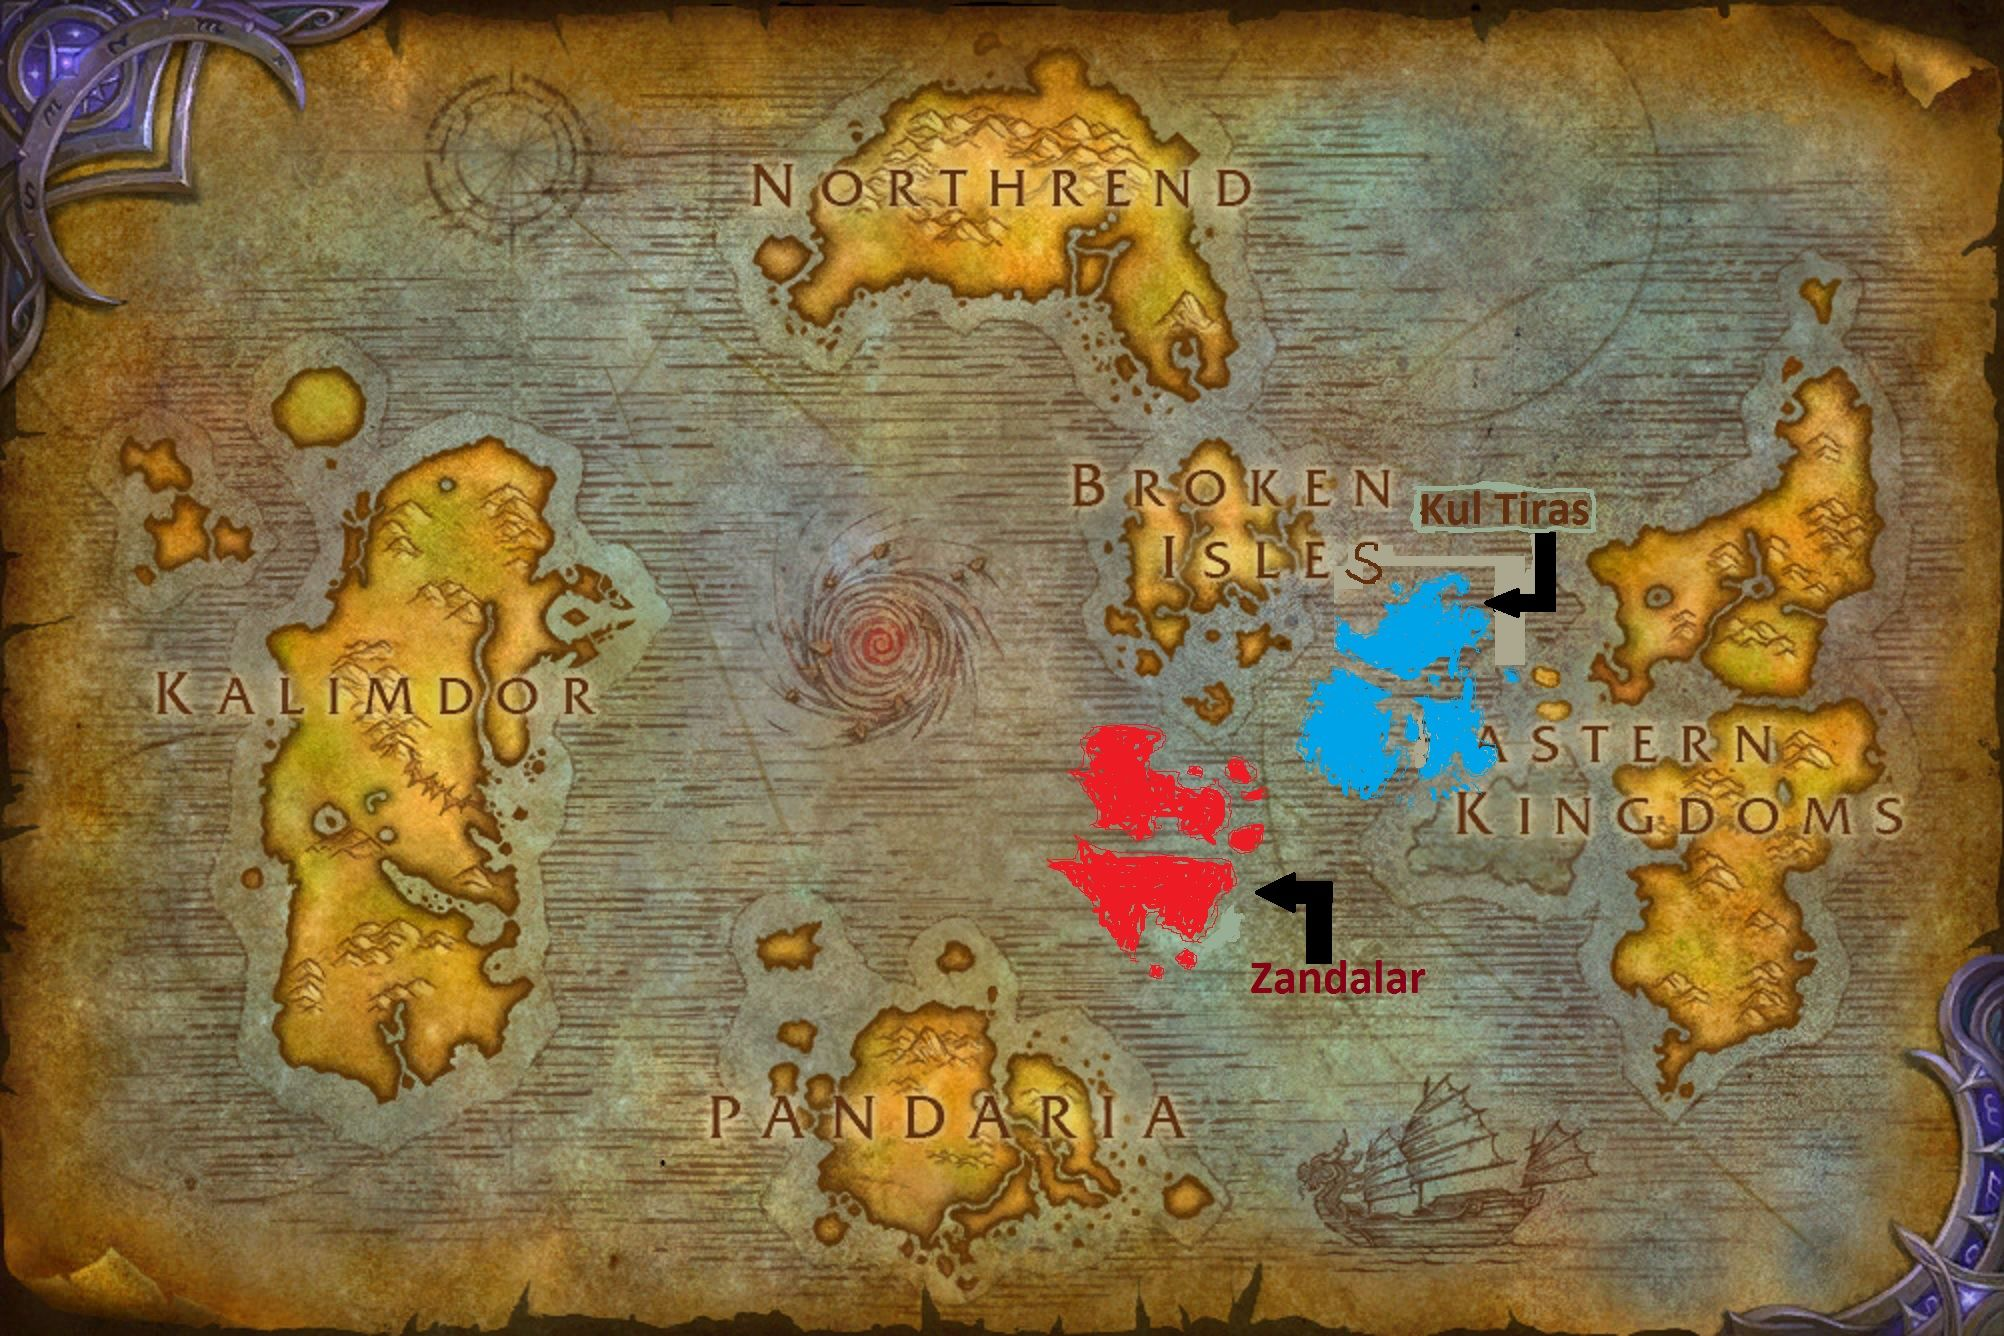 My attempt at recreating the bfa map worldofwarcraft blizzard my attempt at recreating the bfa map worldofwarcraft blizzard hearthstone wow warcraft blizzardcs gaming gumiabroncs Images